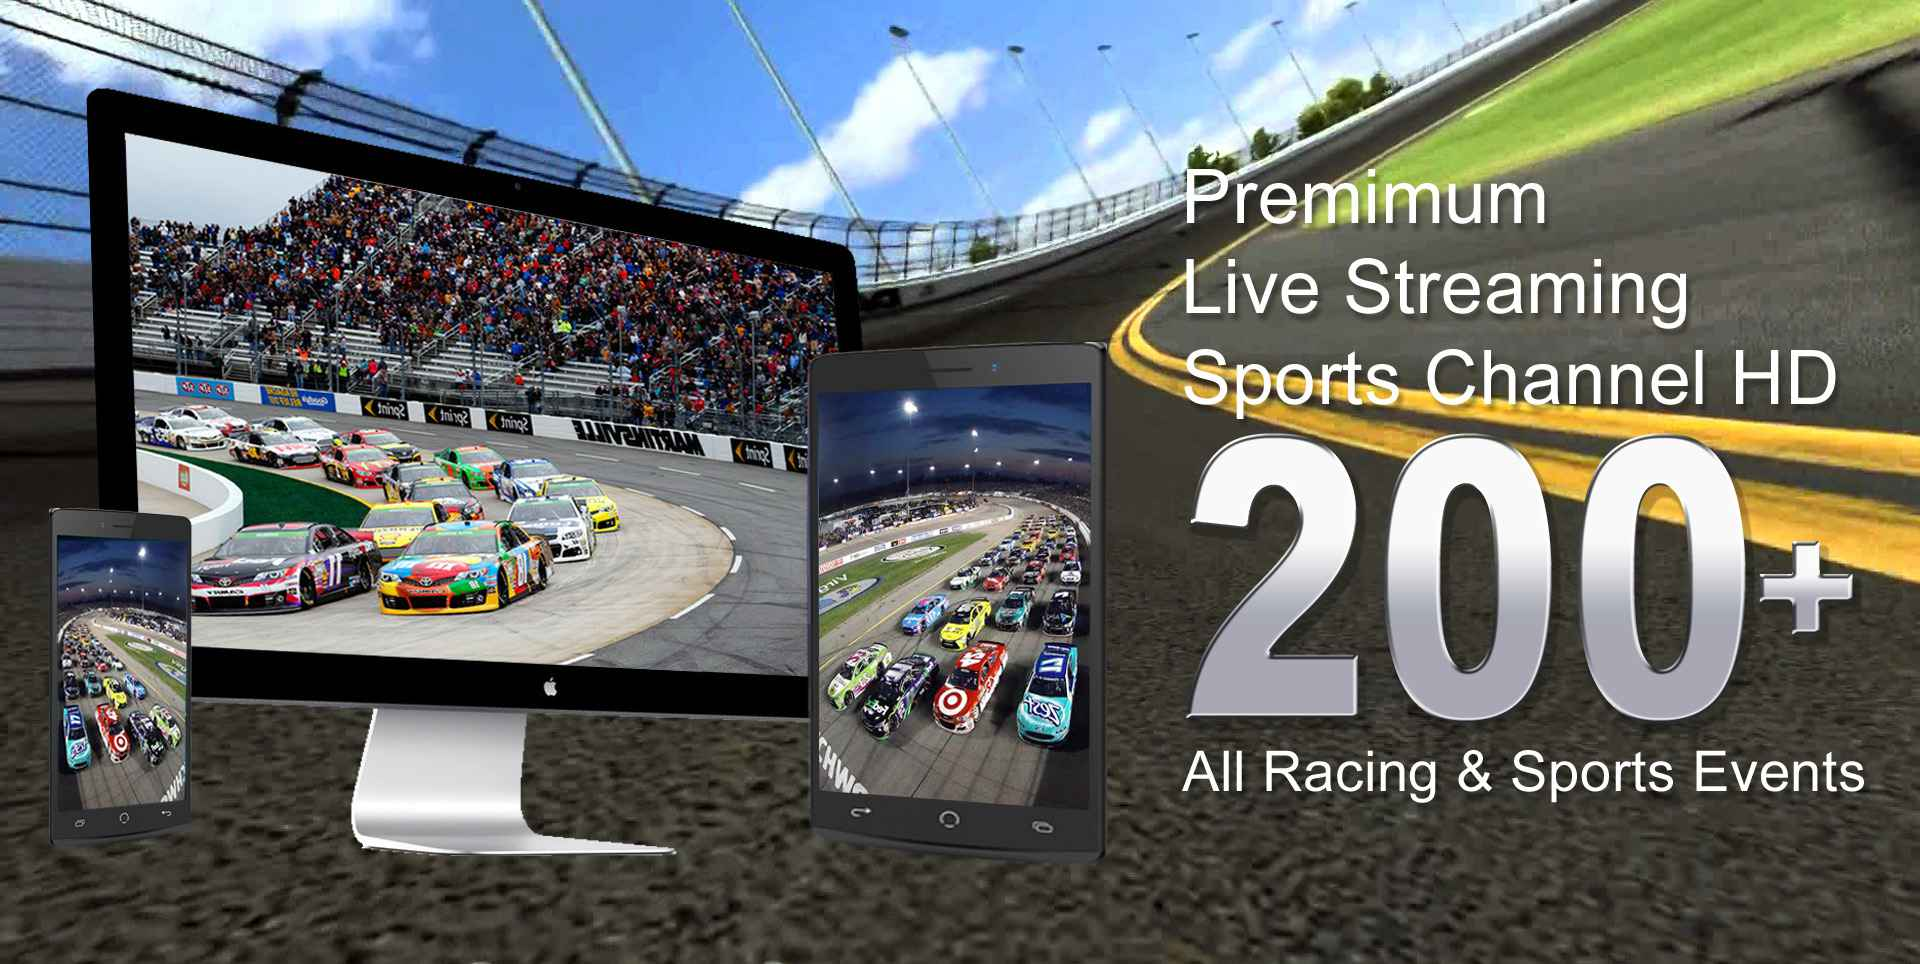 NASCAR XFINITY Series at Bristol